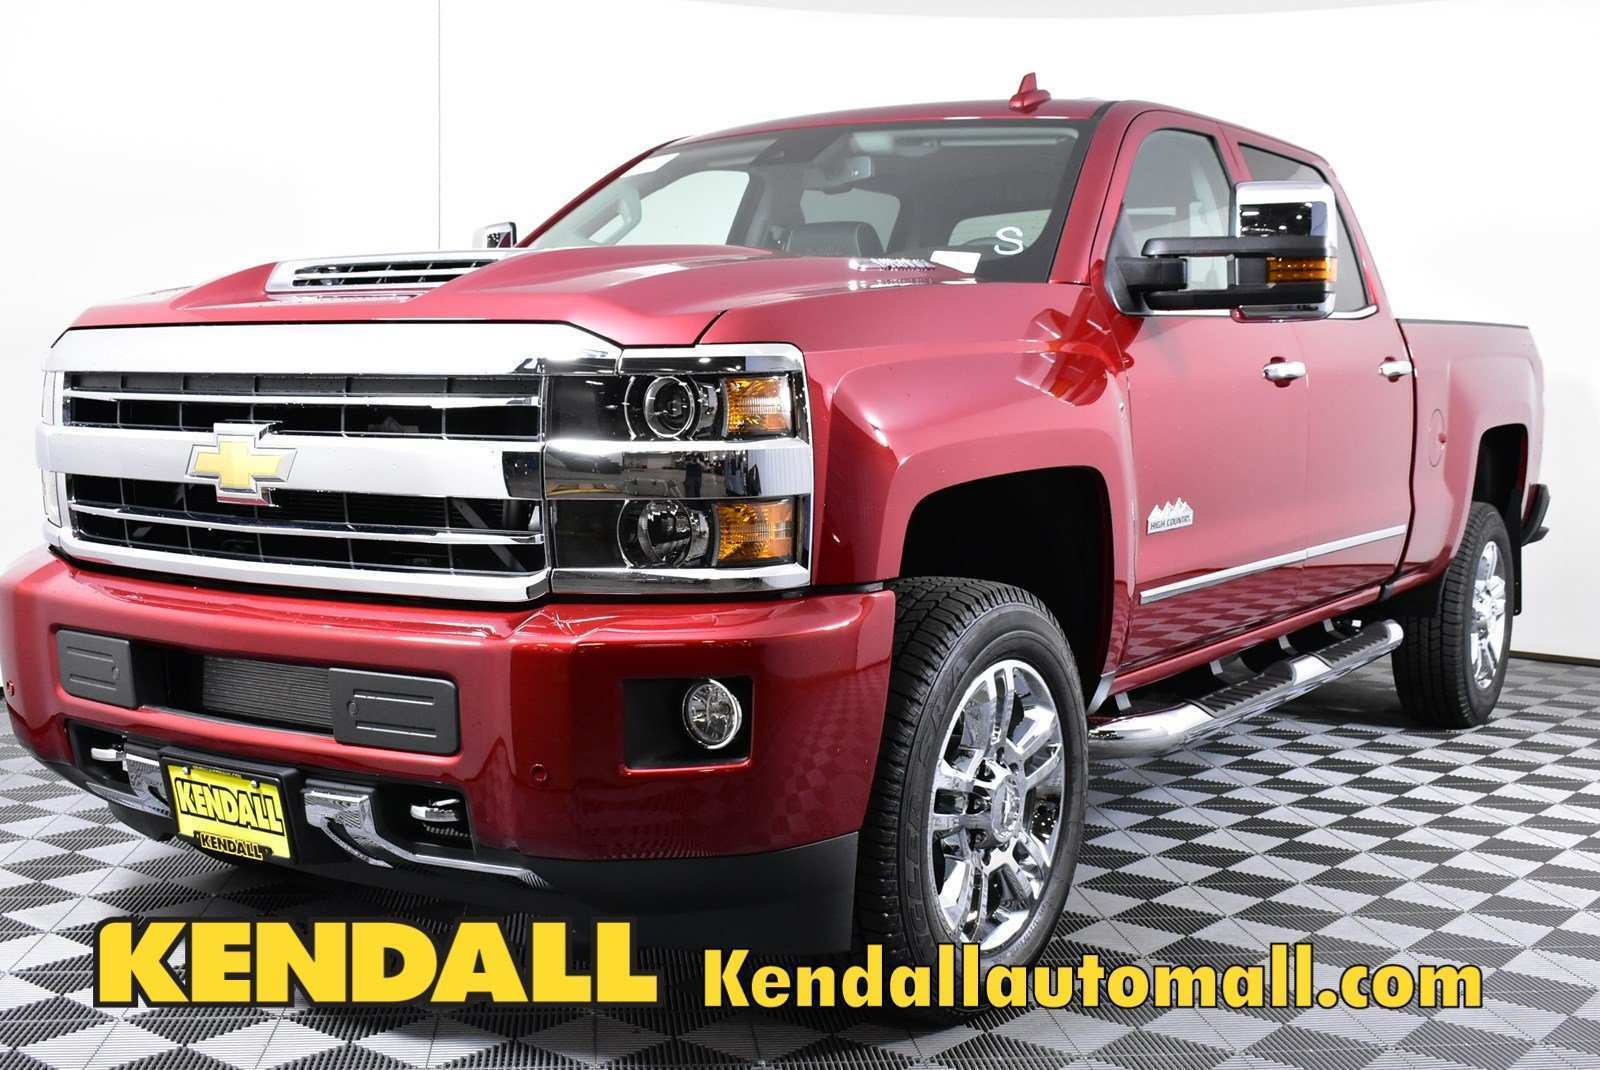 16 All New 2019 Chevrolet High Country Picture for 2019 Chevrolet High Country